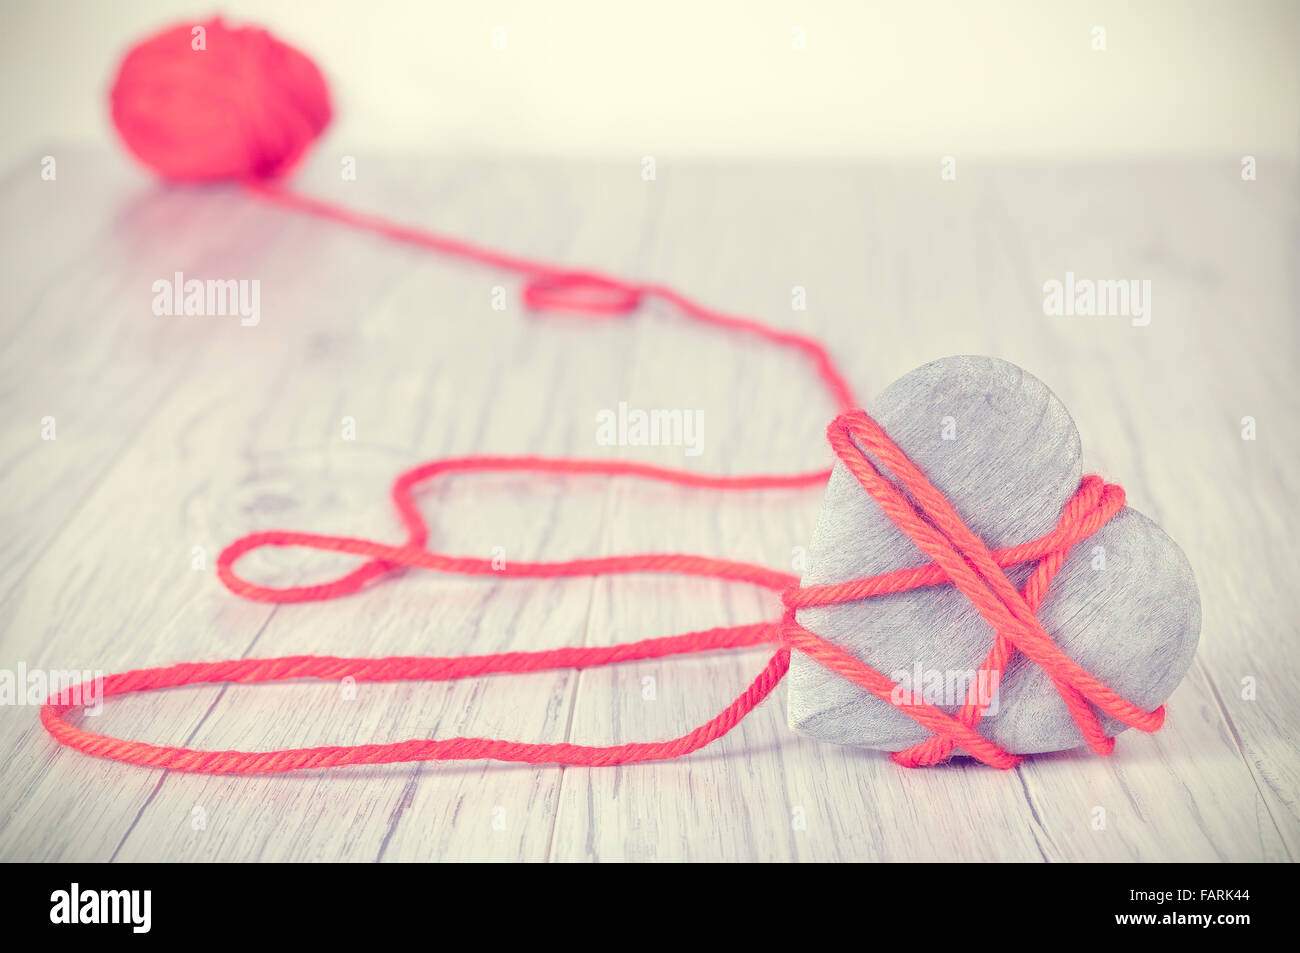 Retro toned wooden heart tied with red yarn, concept picture. - Stock Image